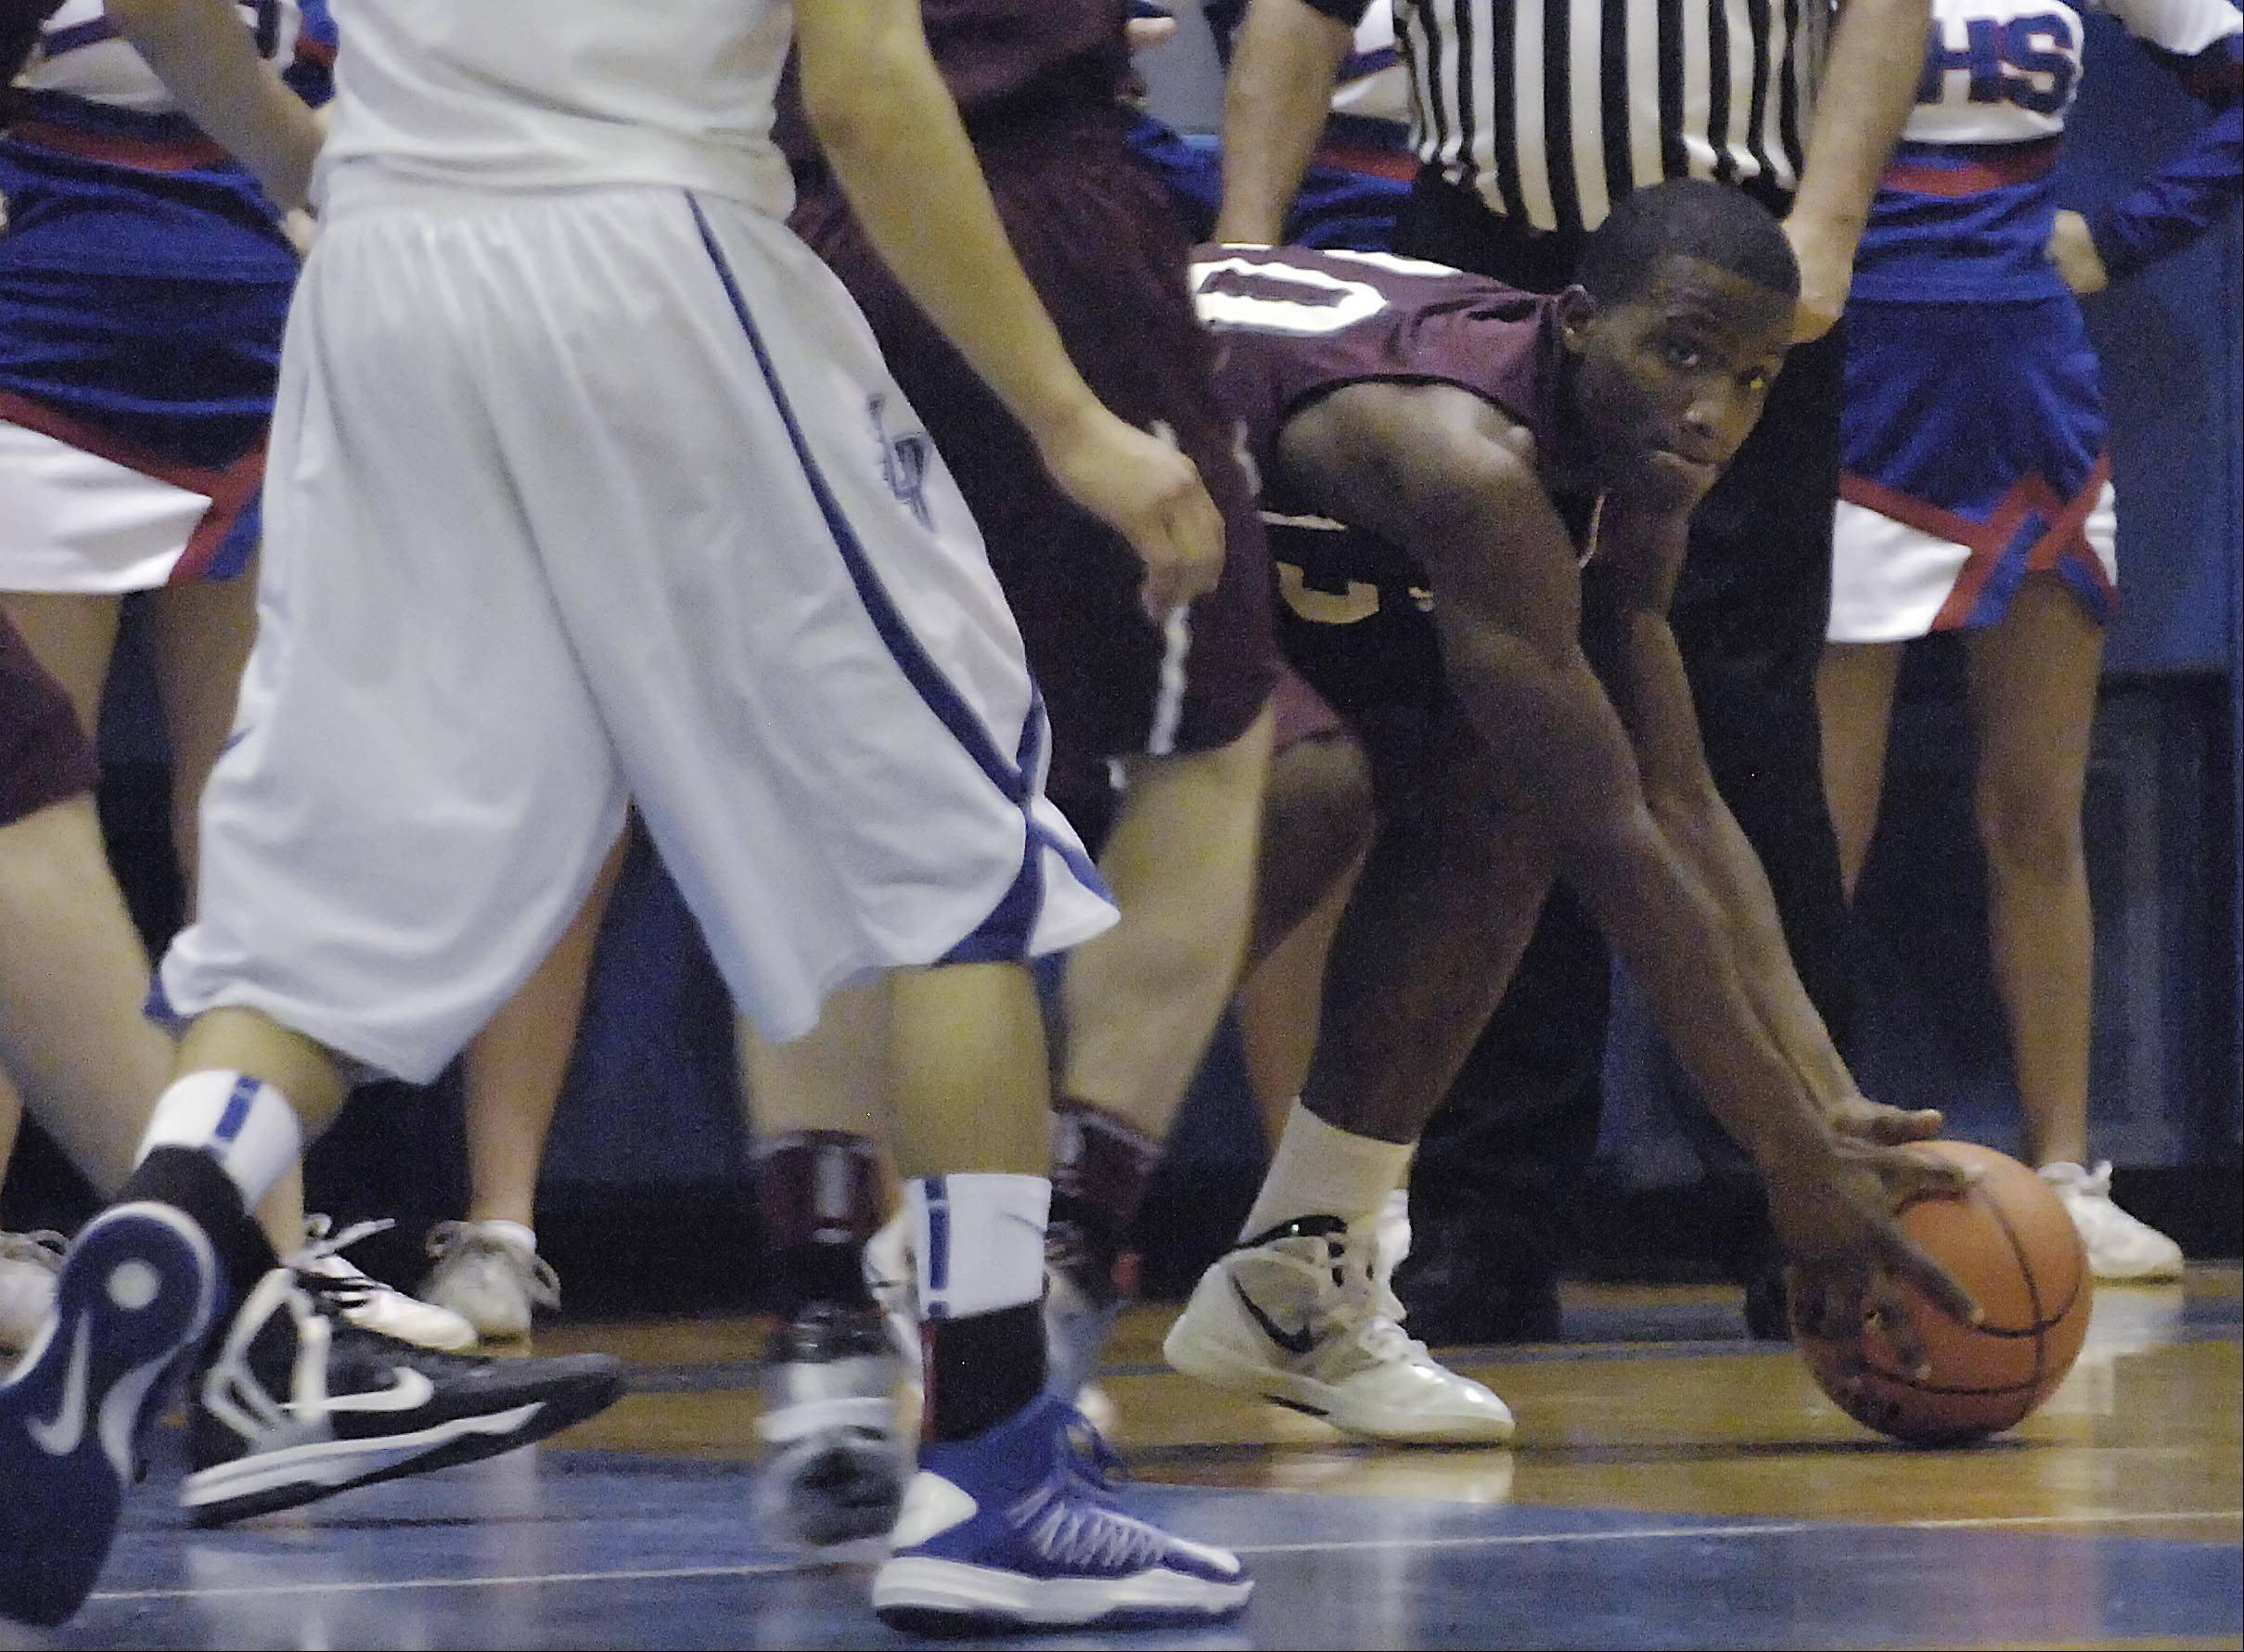 Images from the Elgin vs. Larkin boys basketball game Wednesday, December 12, 2012.